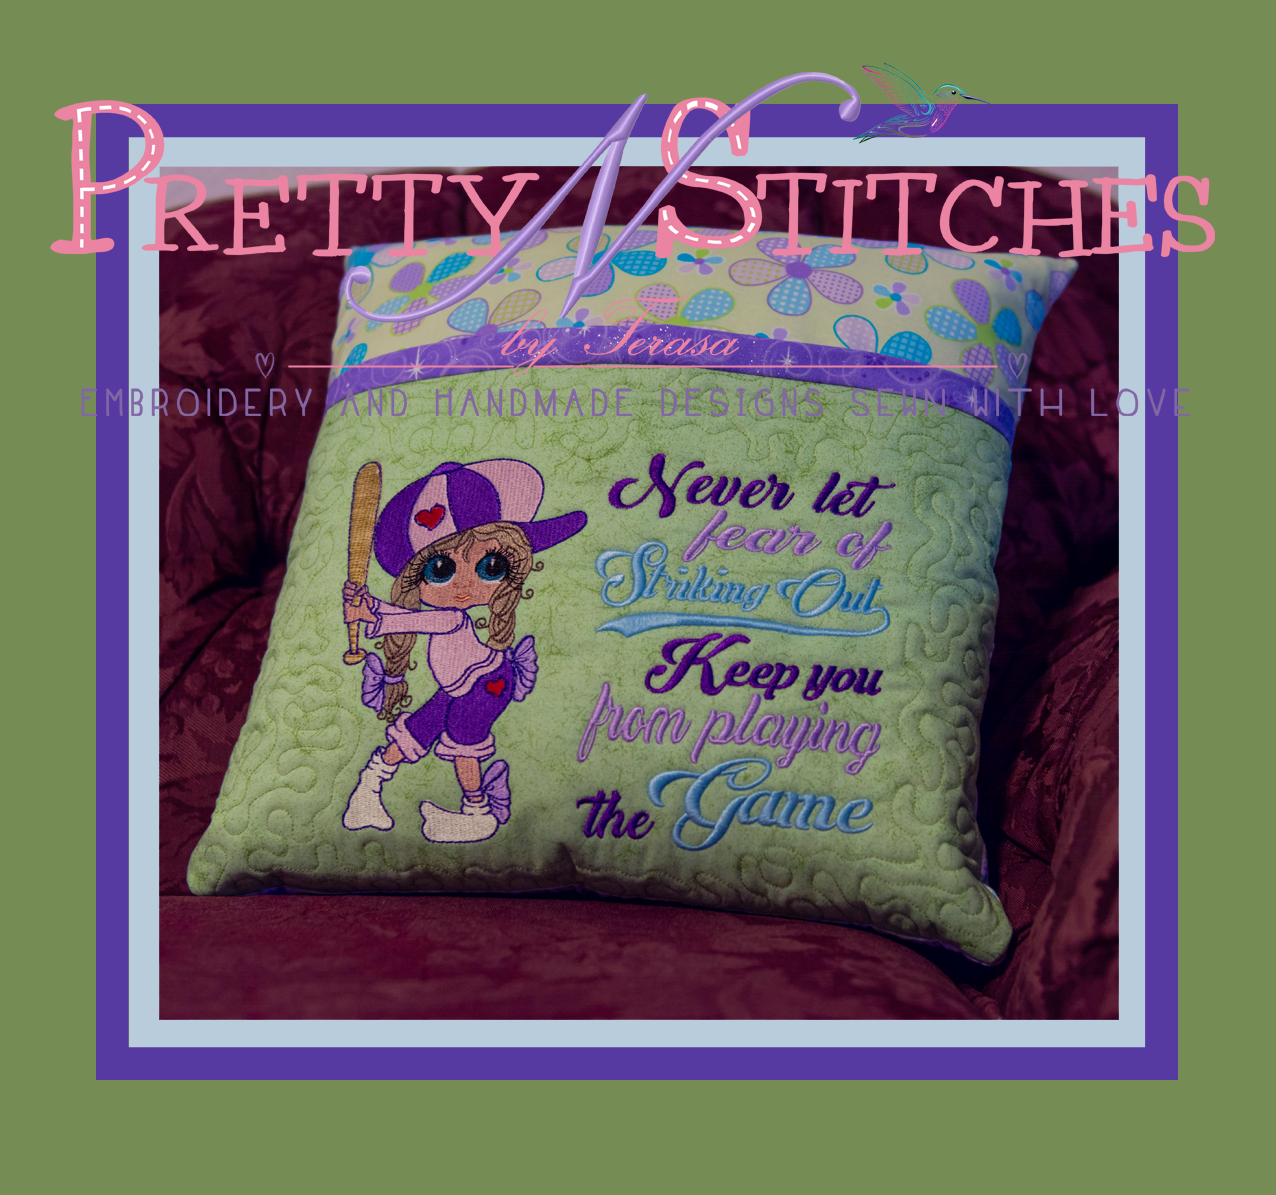 Never Let Fear Pillow Embroidery Design  includes 4X4 - 3 hoopings, 5X7- 2 hoopings, 6X8.6, 7X10 and 8X11.45 - 1 hooping with bonus 13X16 design with stipple